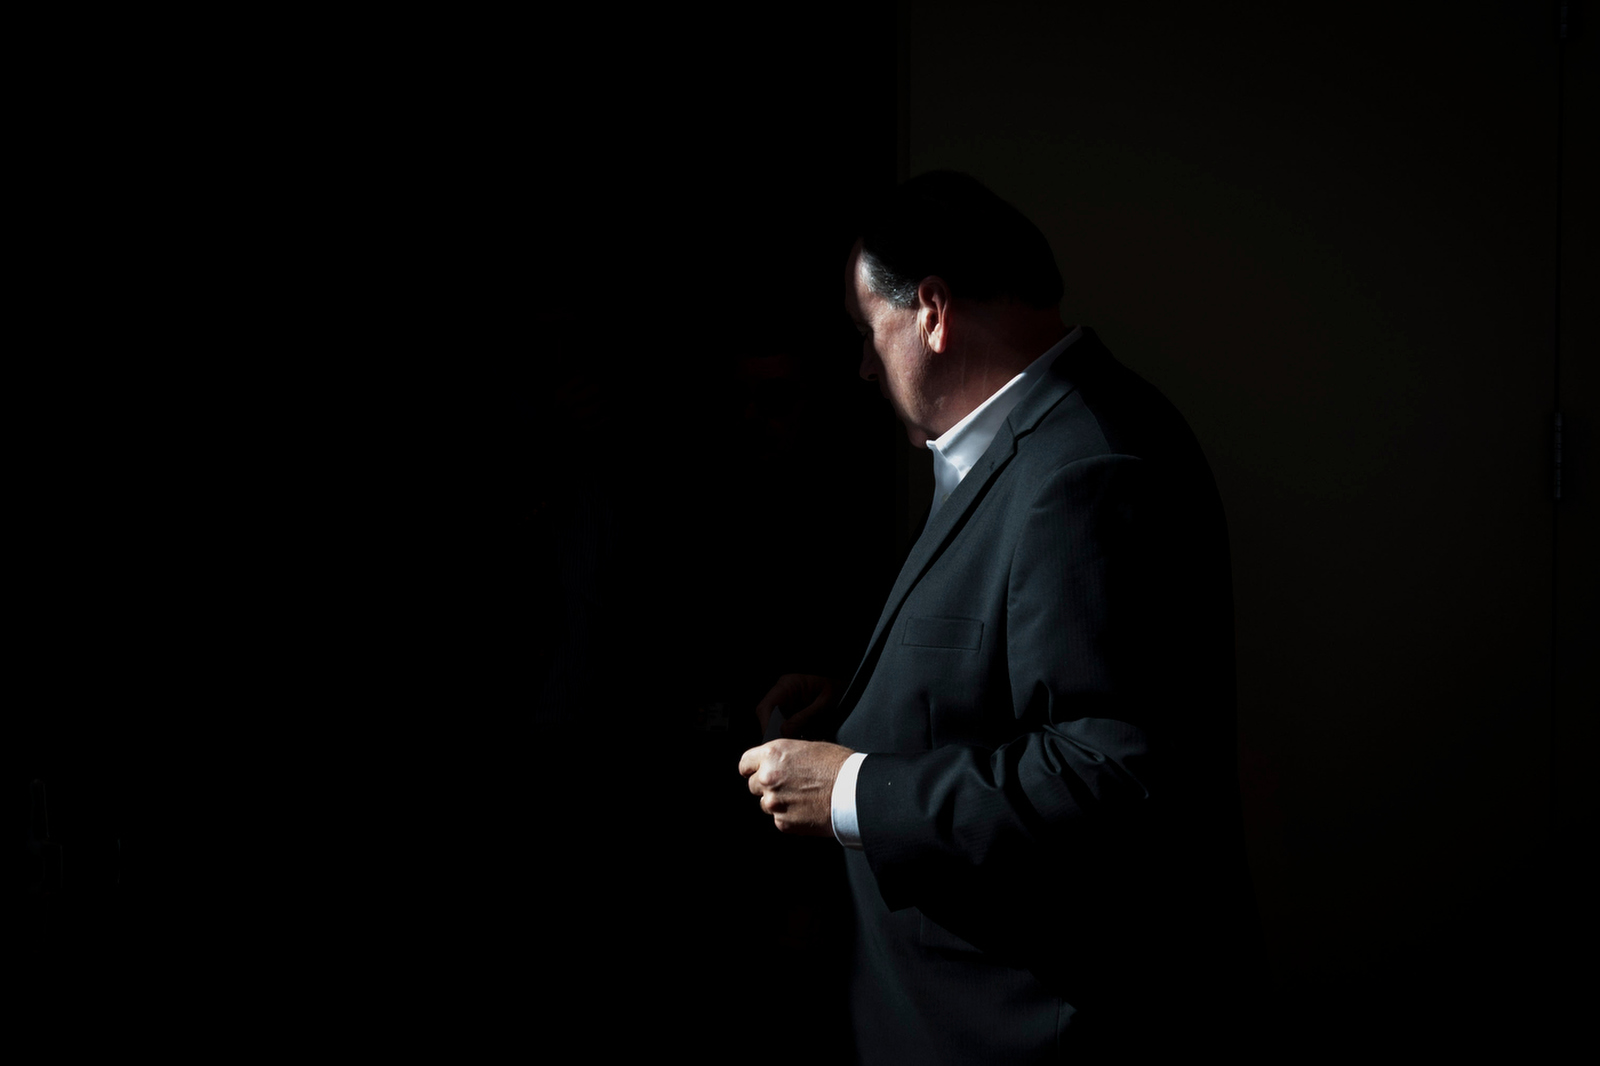 U.S. Republican presidential candidate Mike Huckabee speaks at the Freedom 2015 National Religious Liberties Conference in Des Moines, Iowa November 6, 2015.